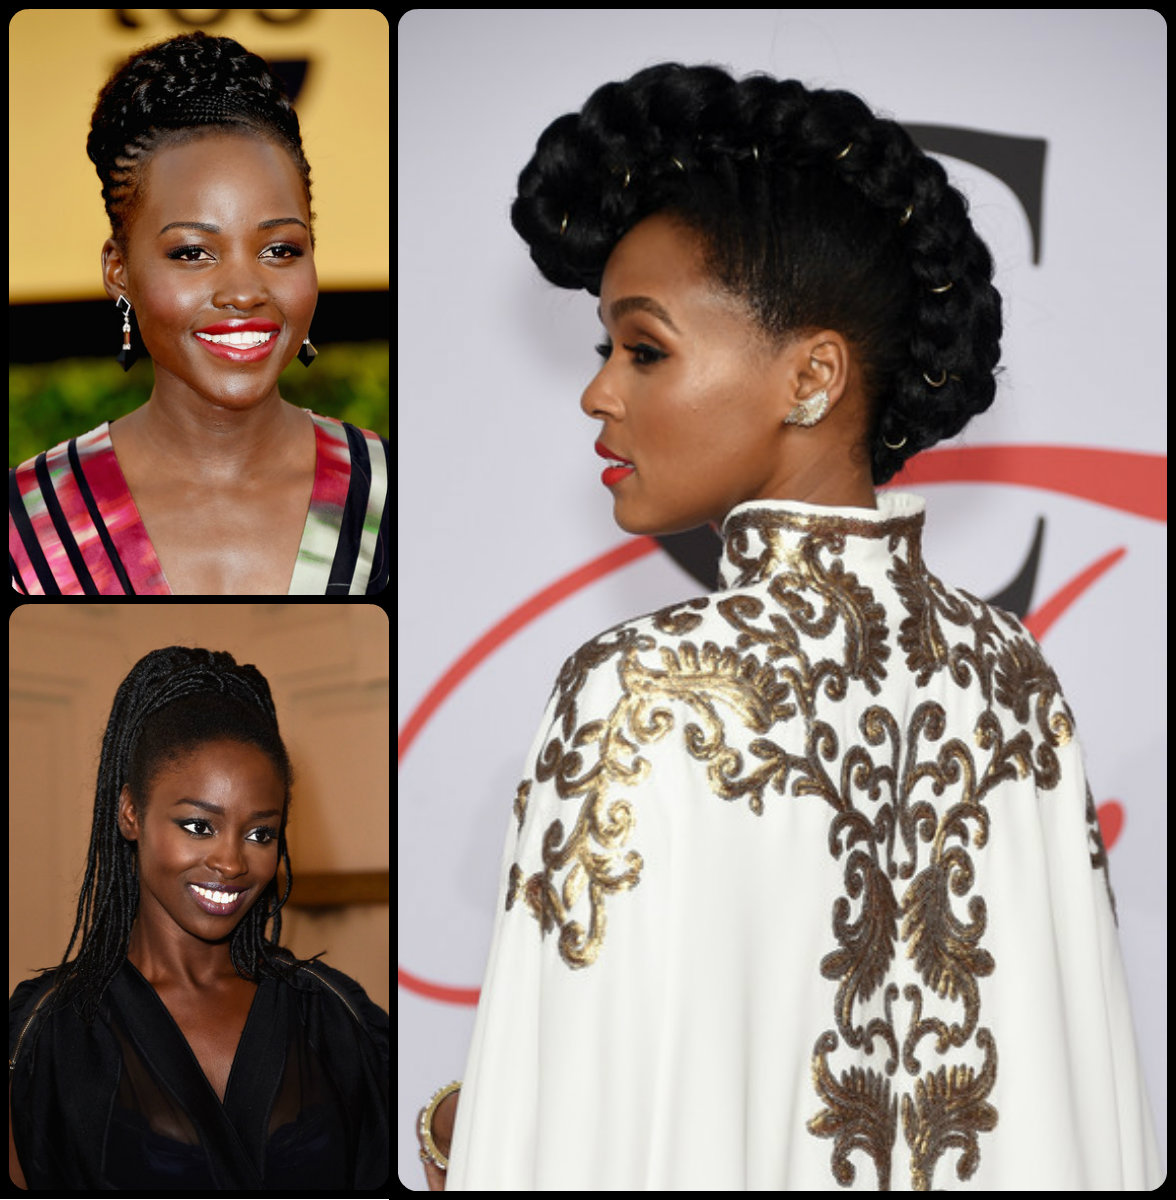 Swell Black Women Braided Updos 2015 Summer Hairstyles 2016 Hair Hairstyles For Women Draintrainus